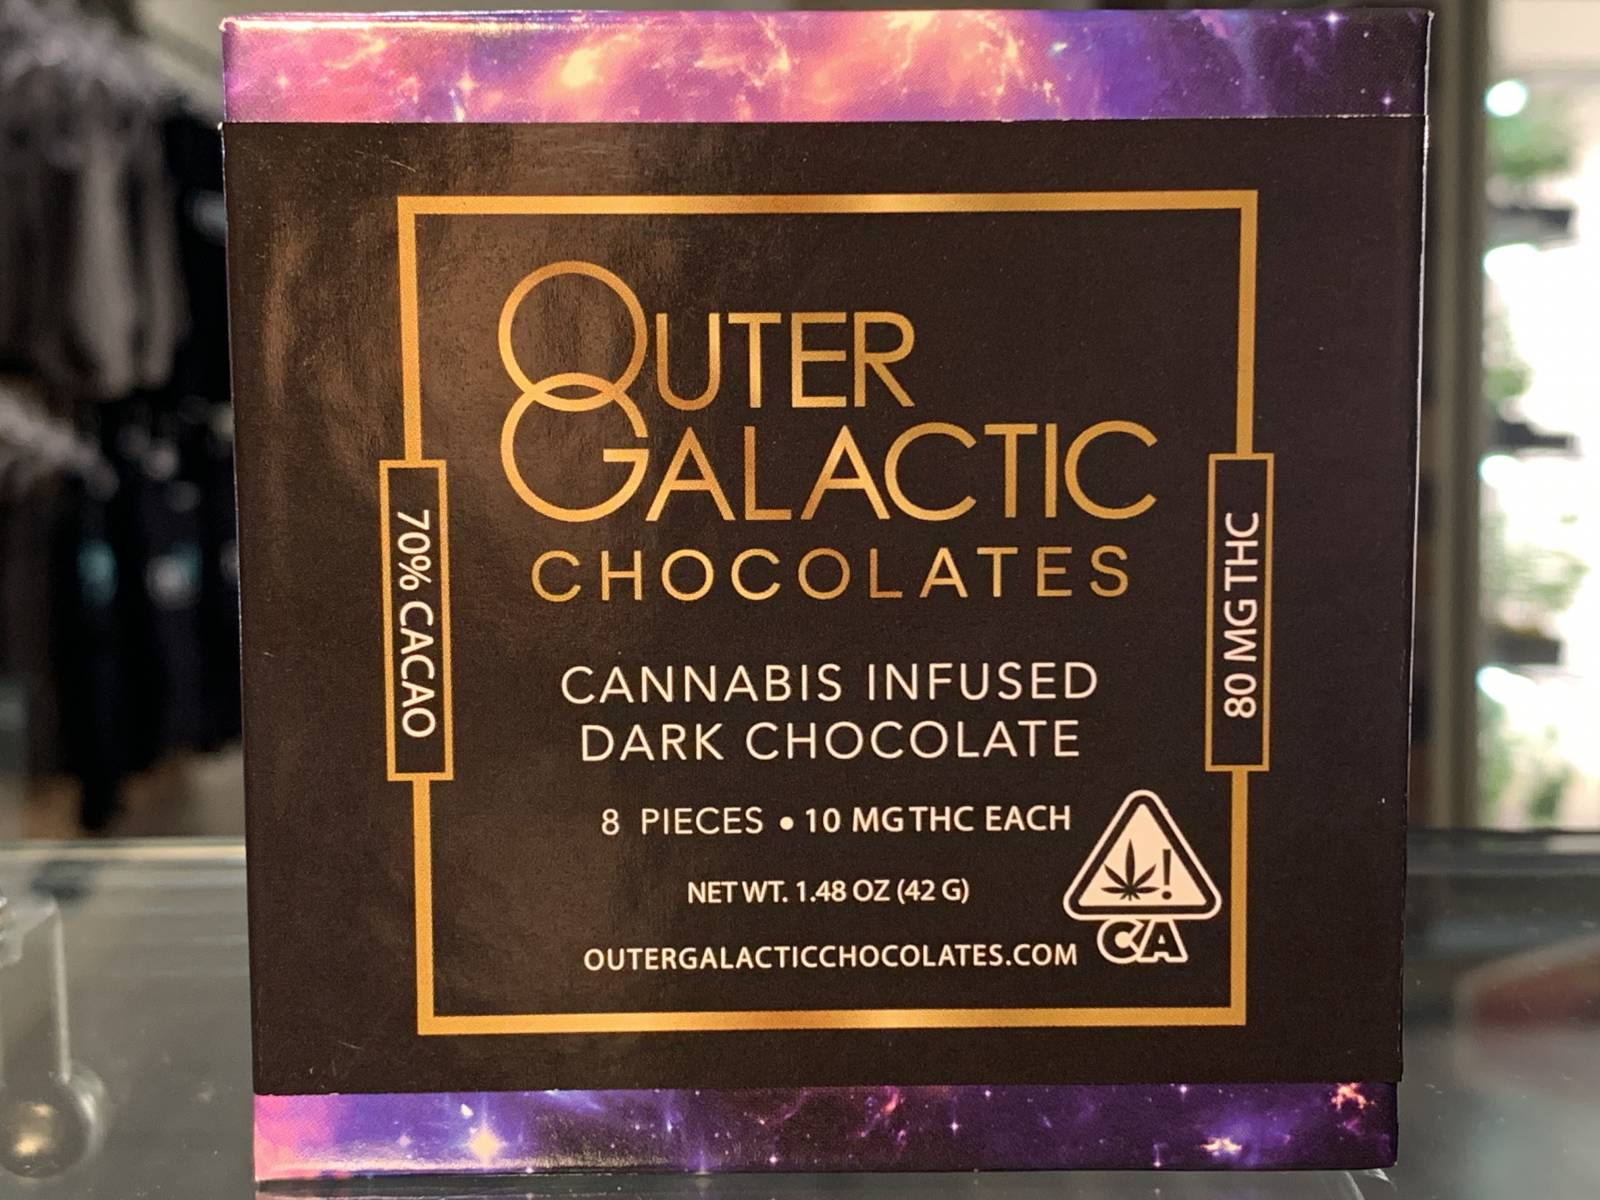 Outer Galactic infused dark chocolate 80mg thc